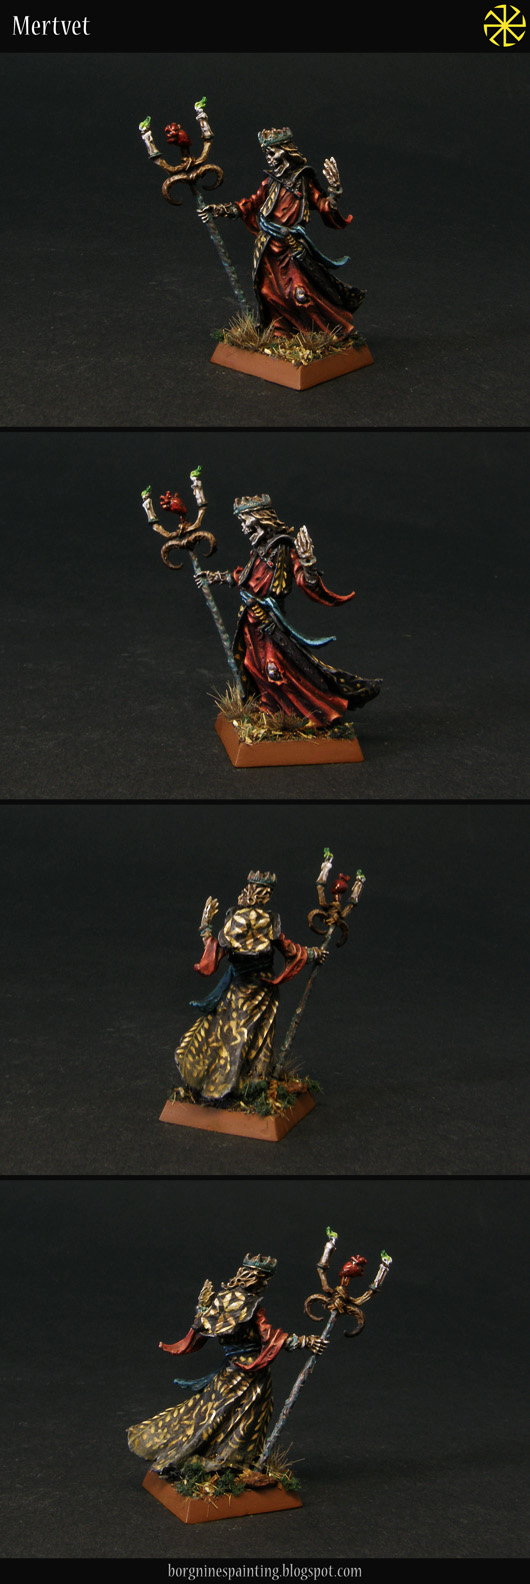 A single Liche miniature from Otherworld Miniatures on a square base, adapted to be used as a necromancer in WFB or AoS. He has a mix of red robes and black ones with yellow, freehanded patterns.